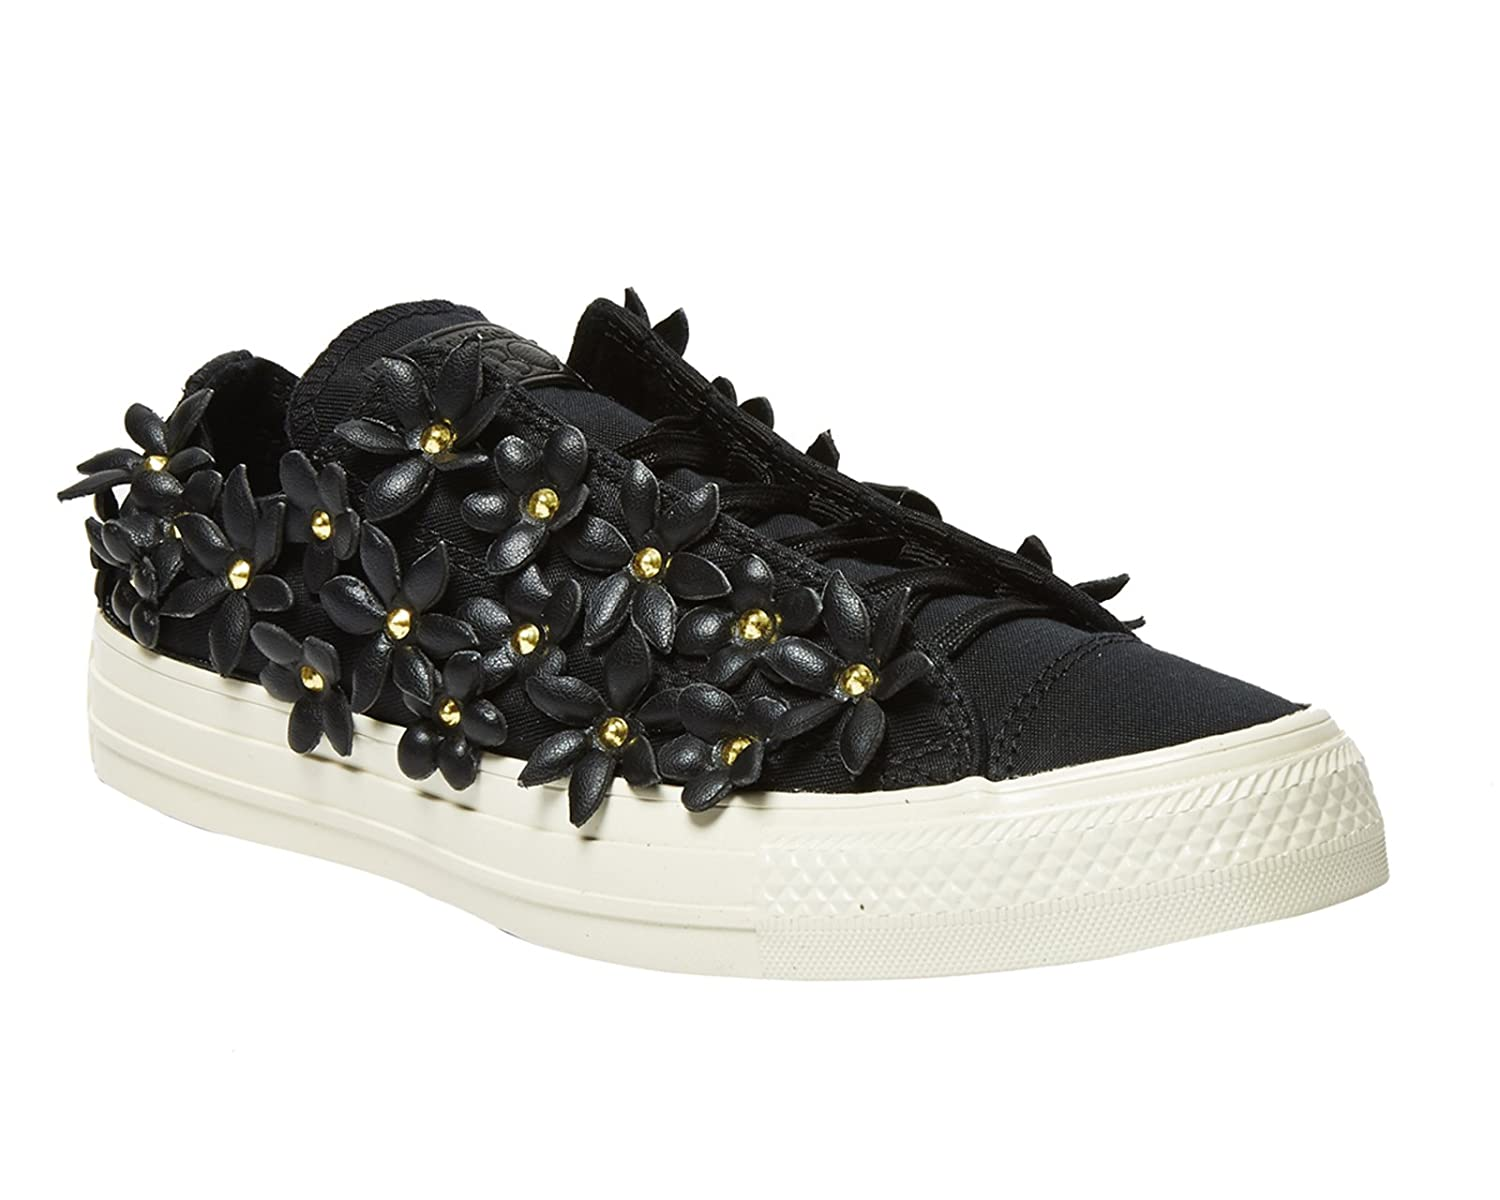 CONVERSE Designer Chucks Schuhe - ALL STAR -  6.5 B(M) US|Black/White/Bright Pink